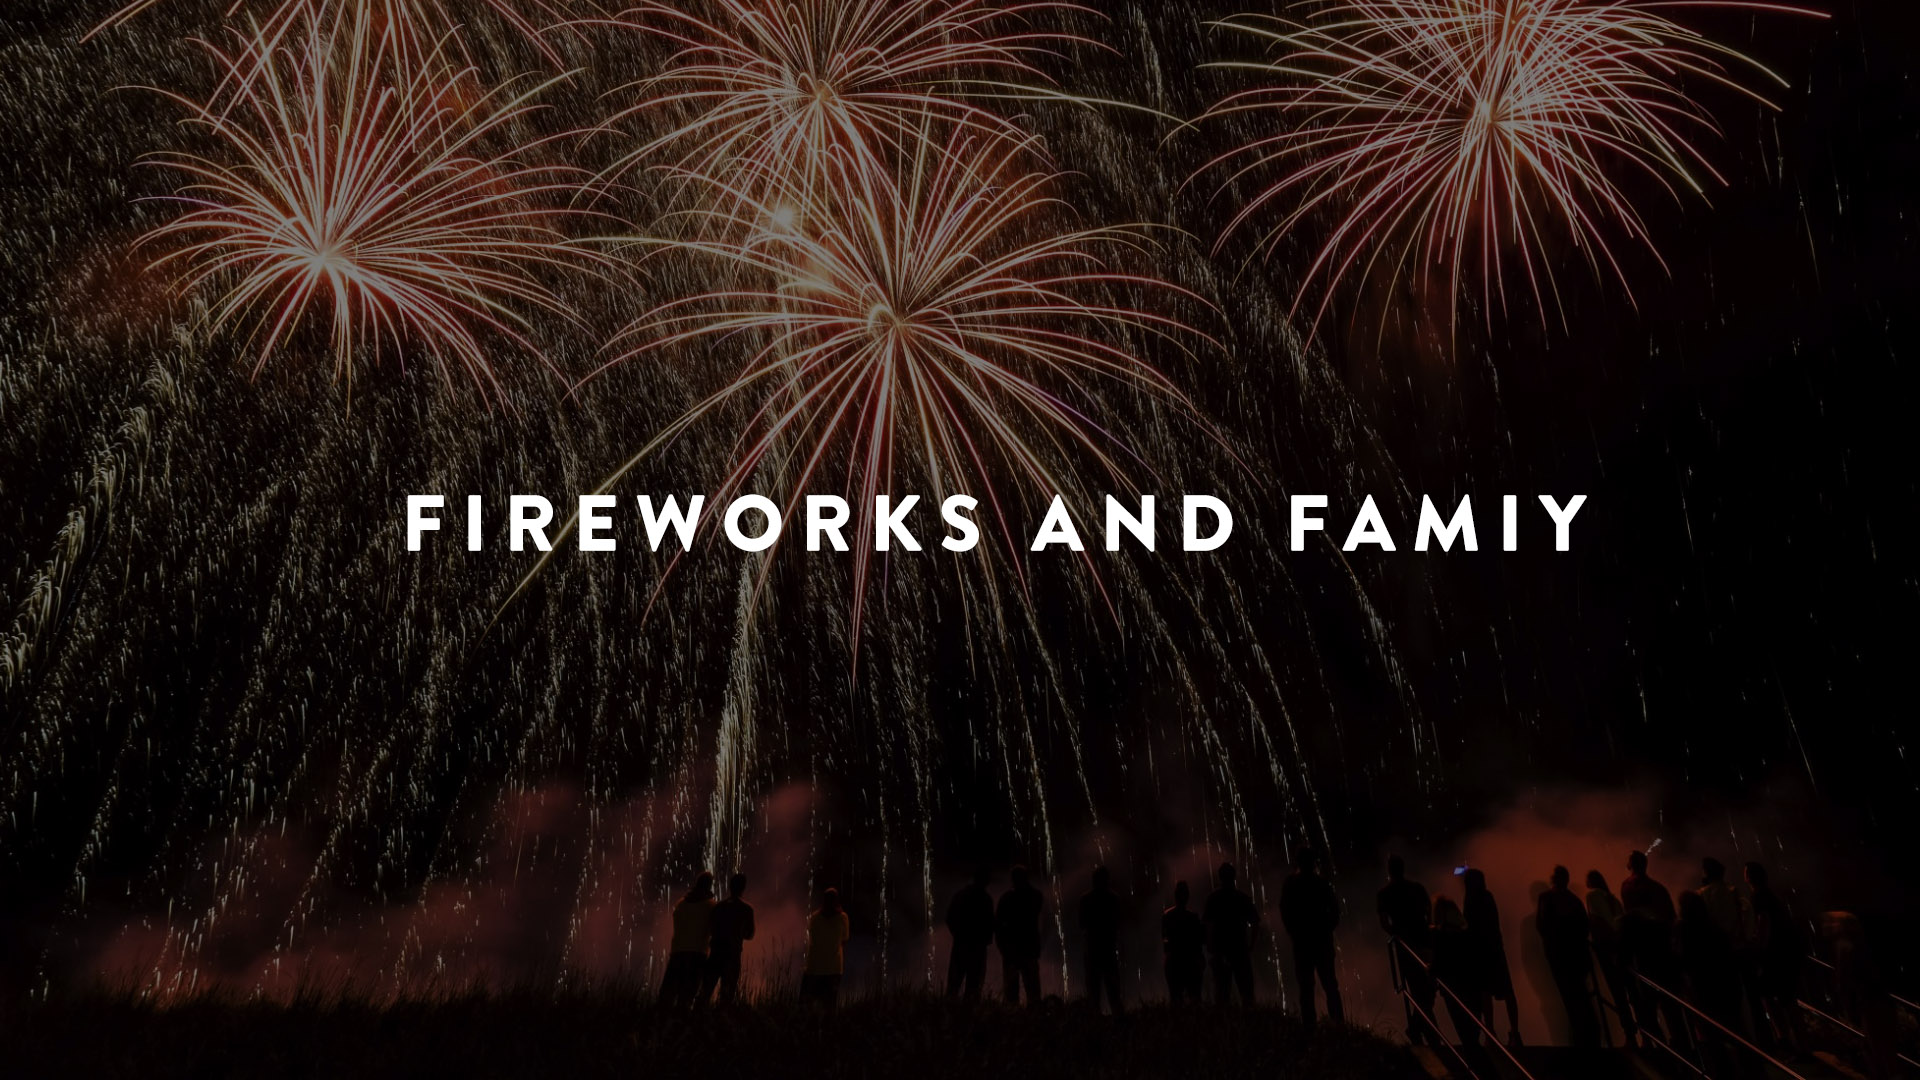 Fireworks and spontaneous family reunions